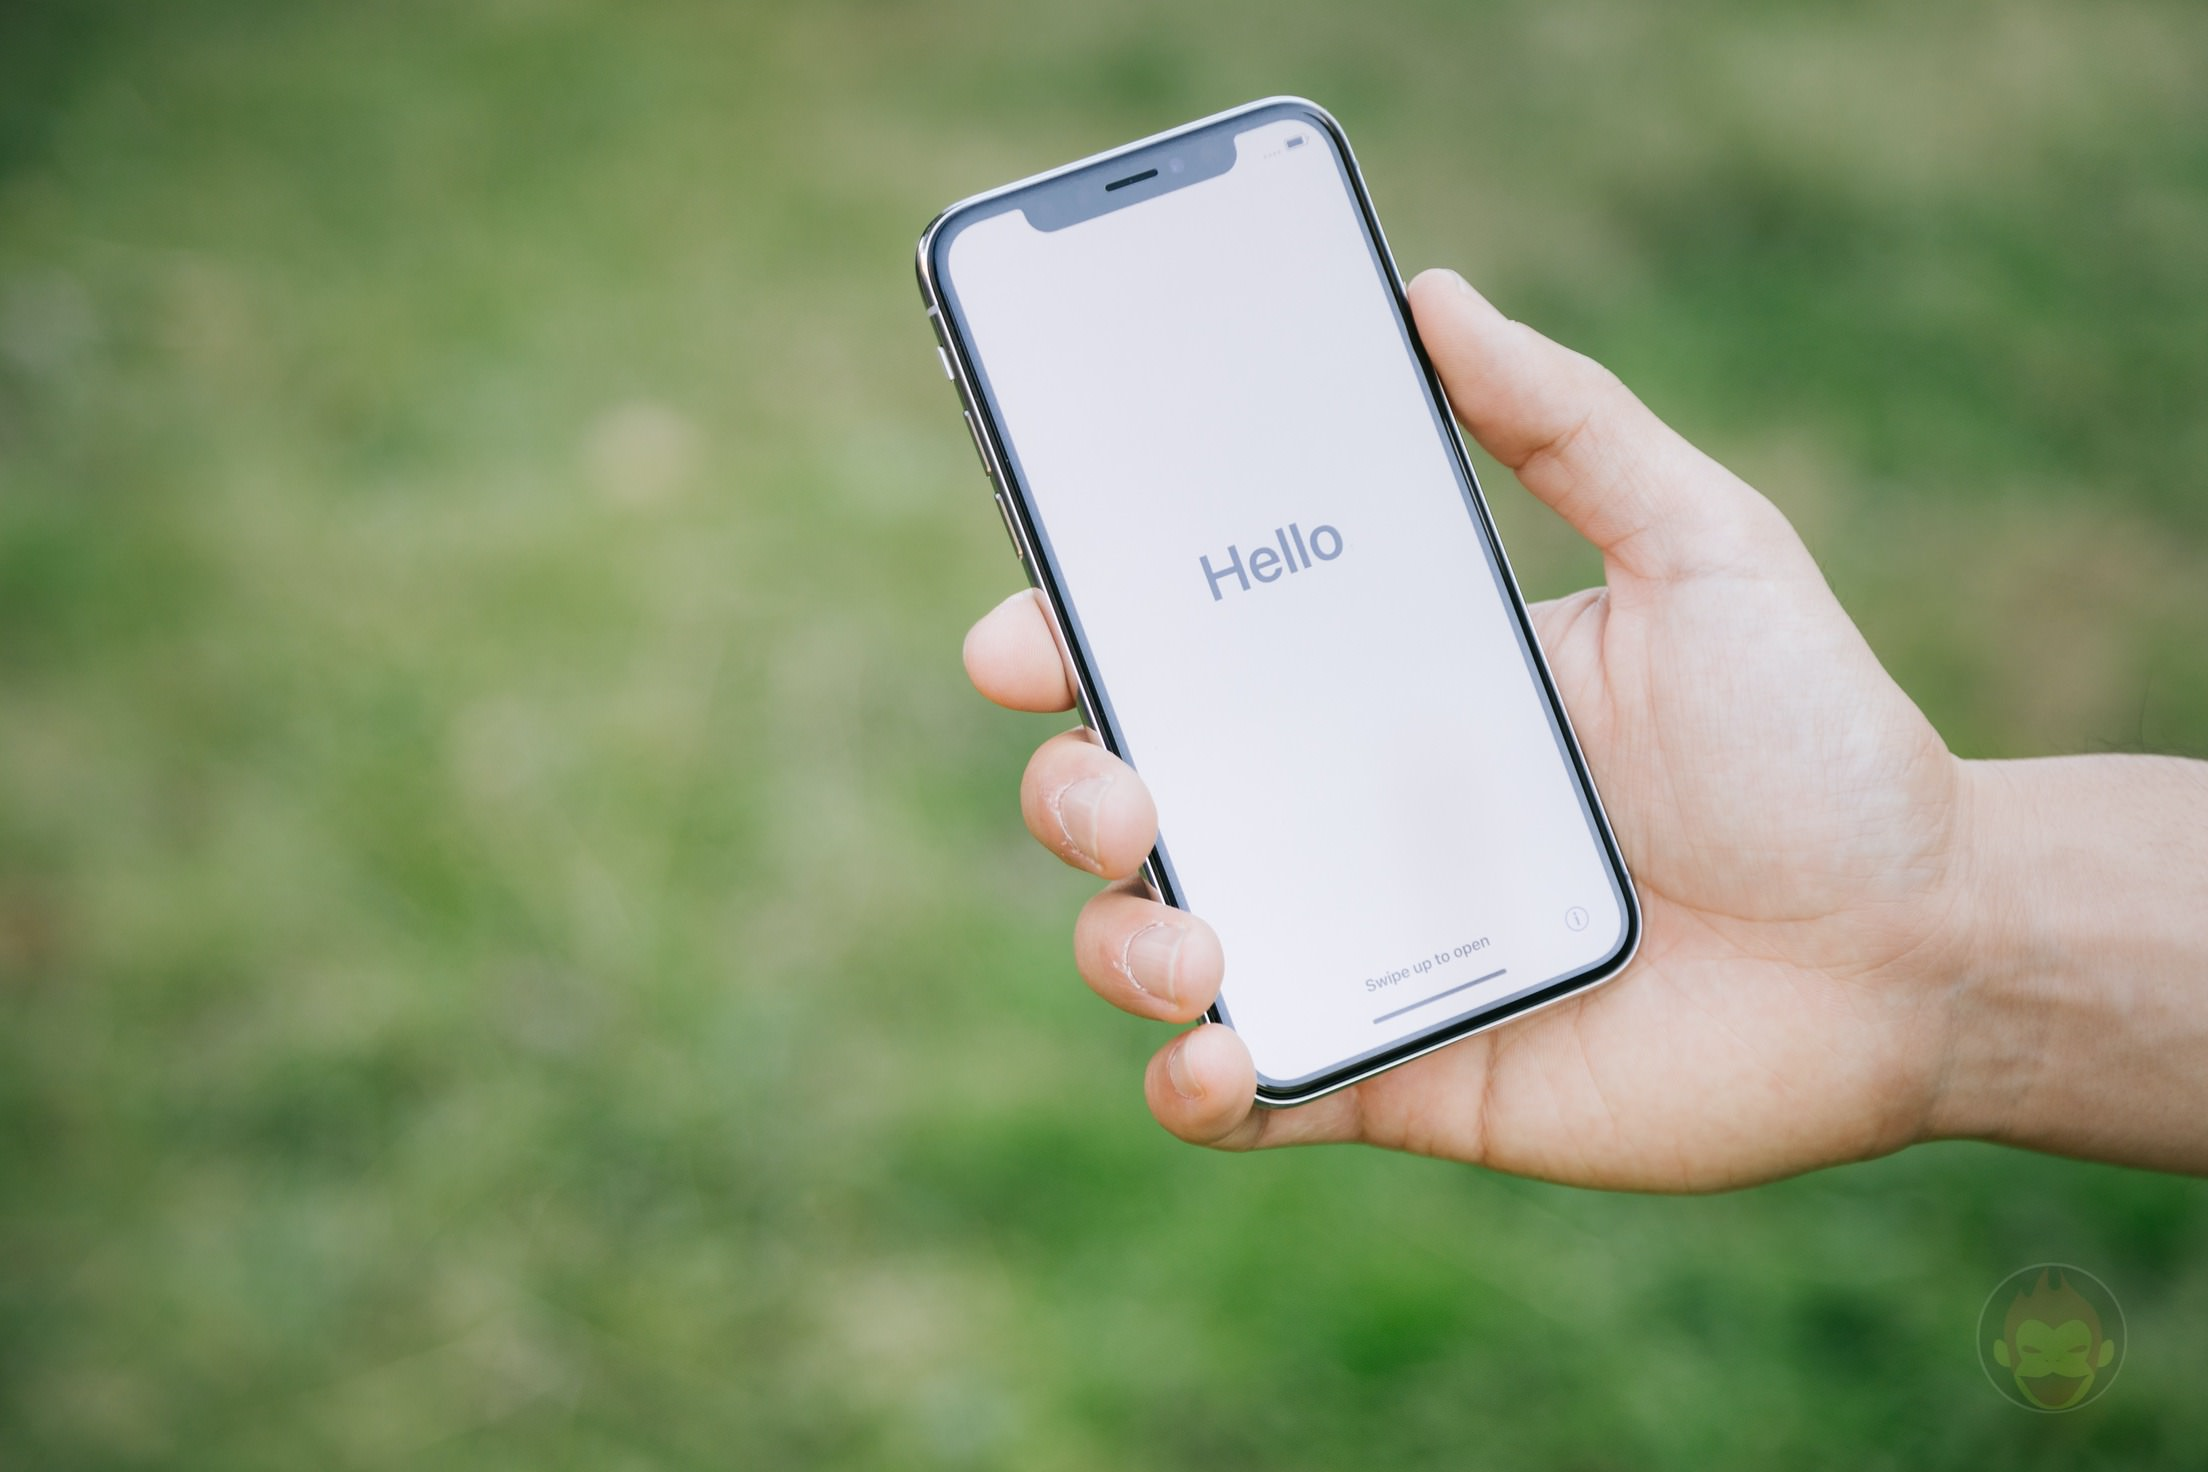 iPhone-X-Silver-Review-01.jpg